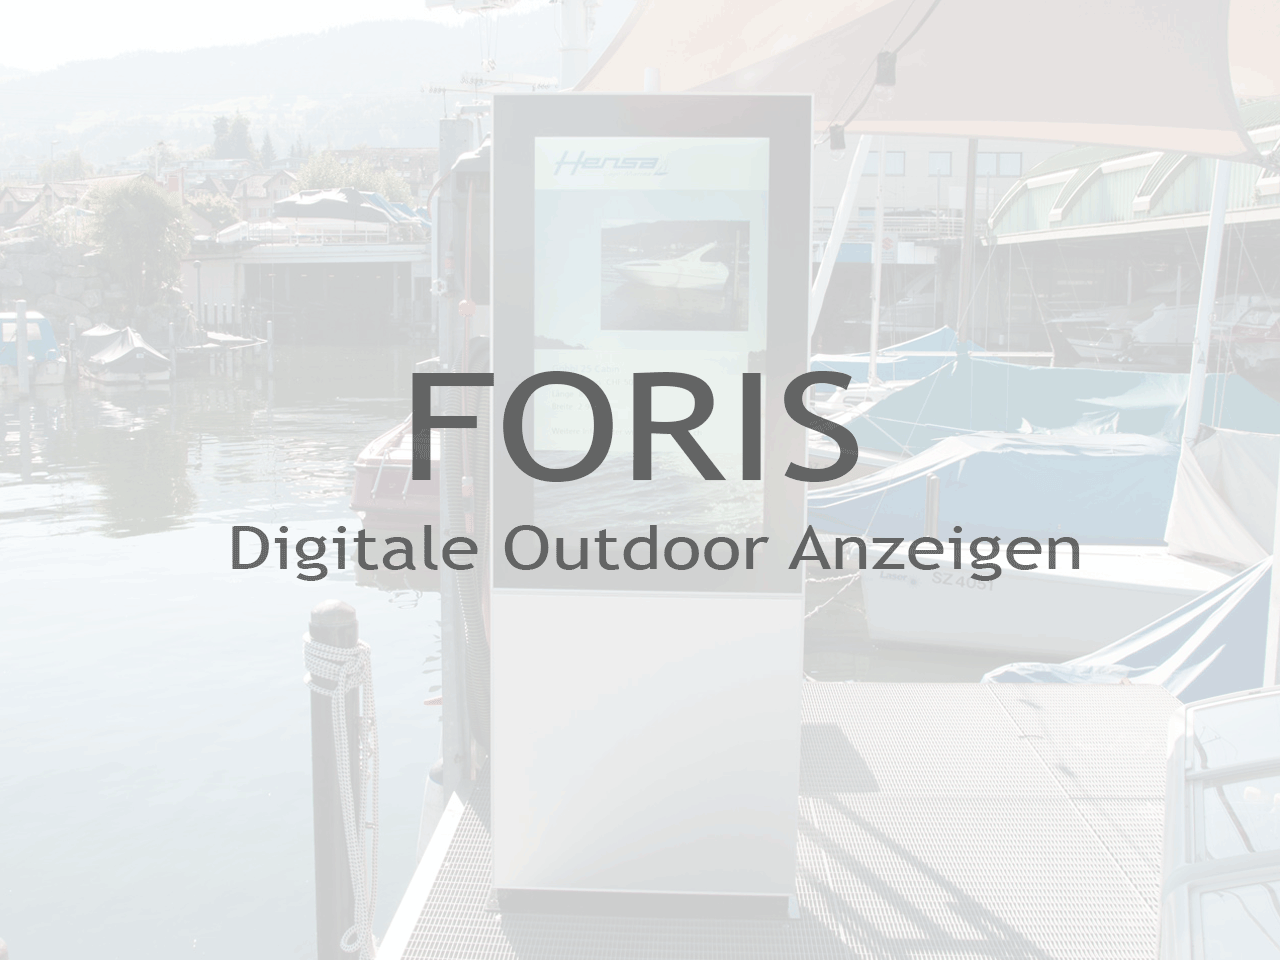 FORIS Digitale Outdoor Anzeigen - Inputech DESIGN